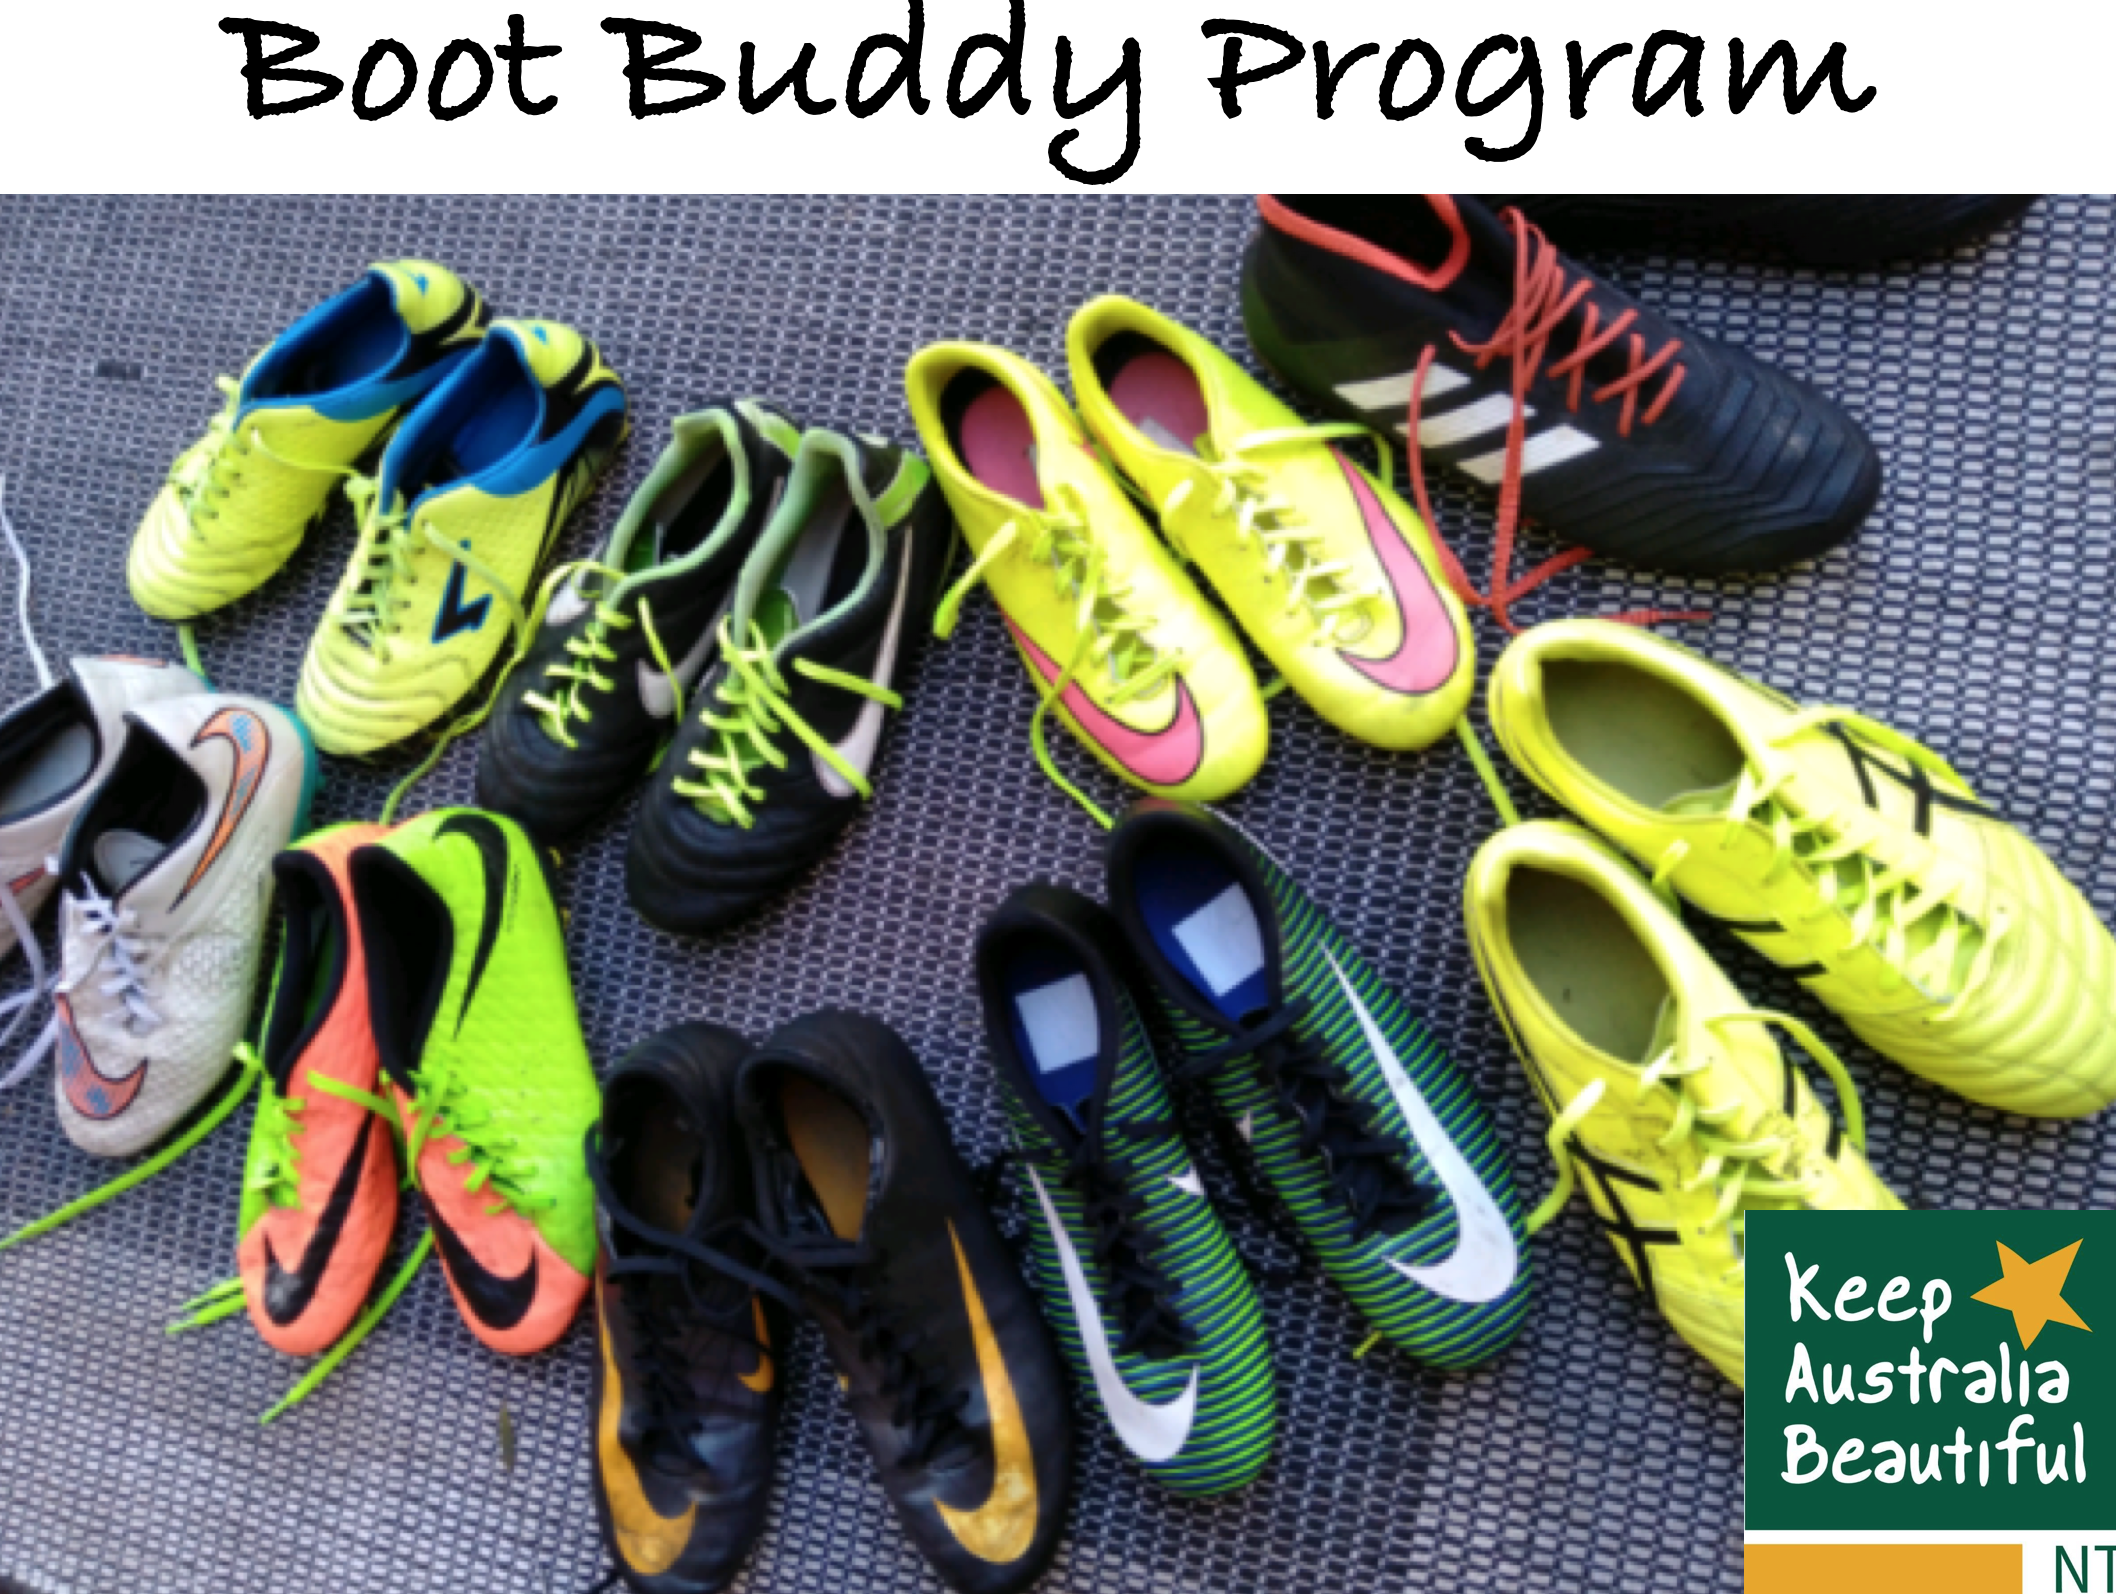 KABCNT Boot Buddy Program